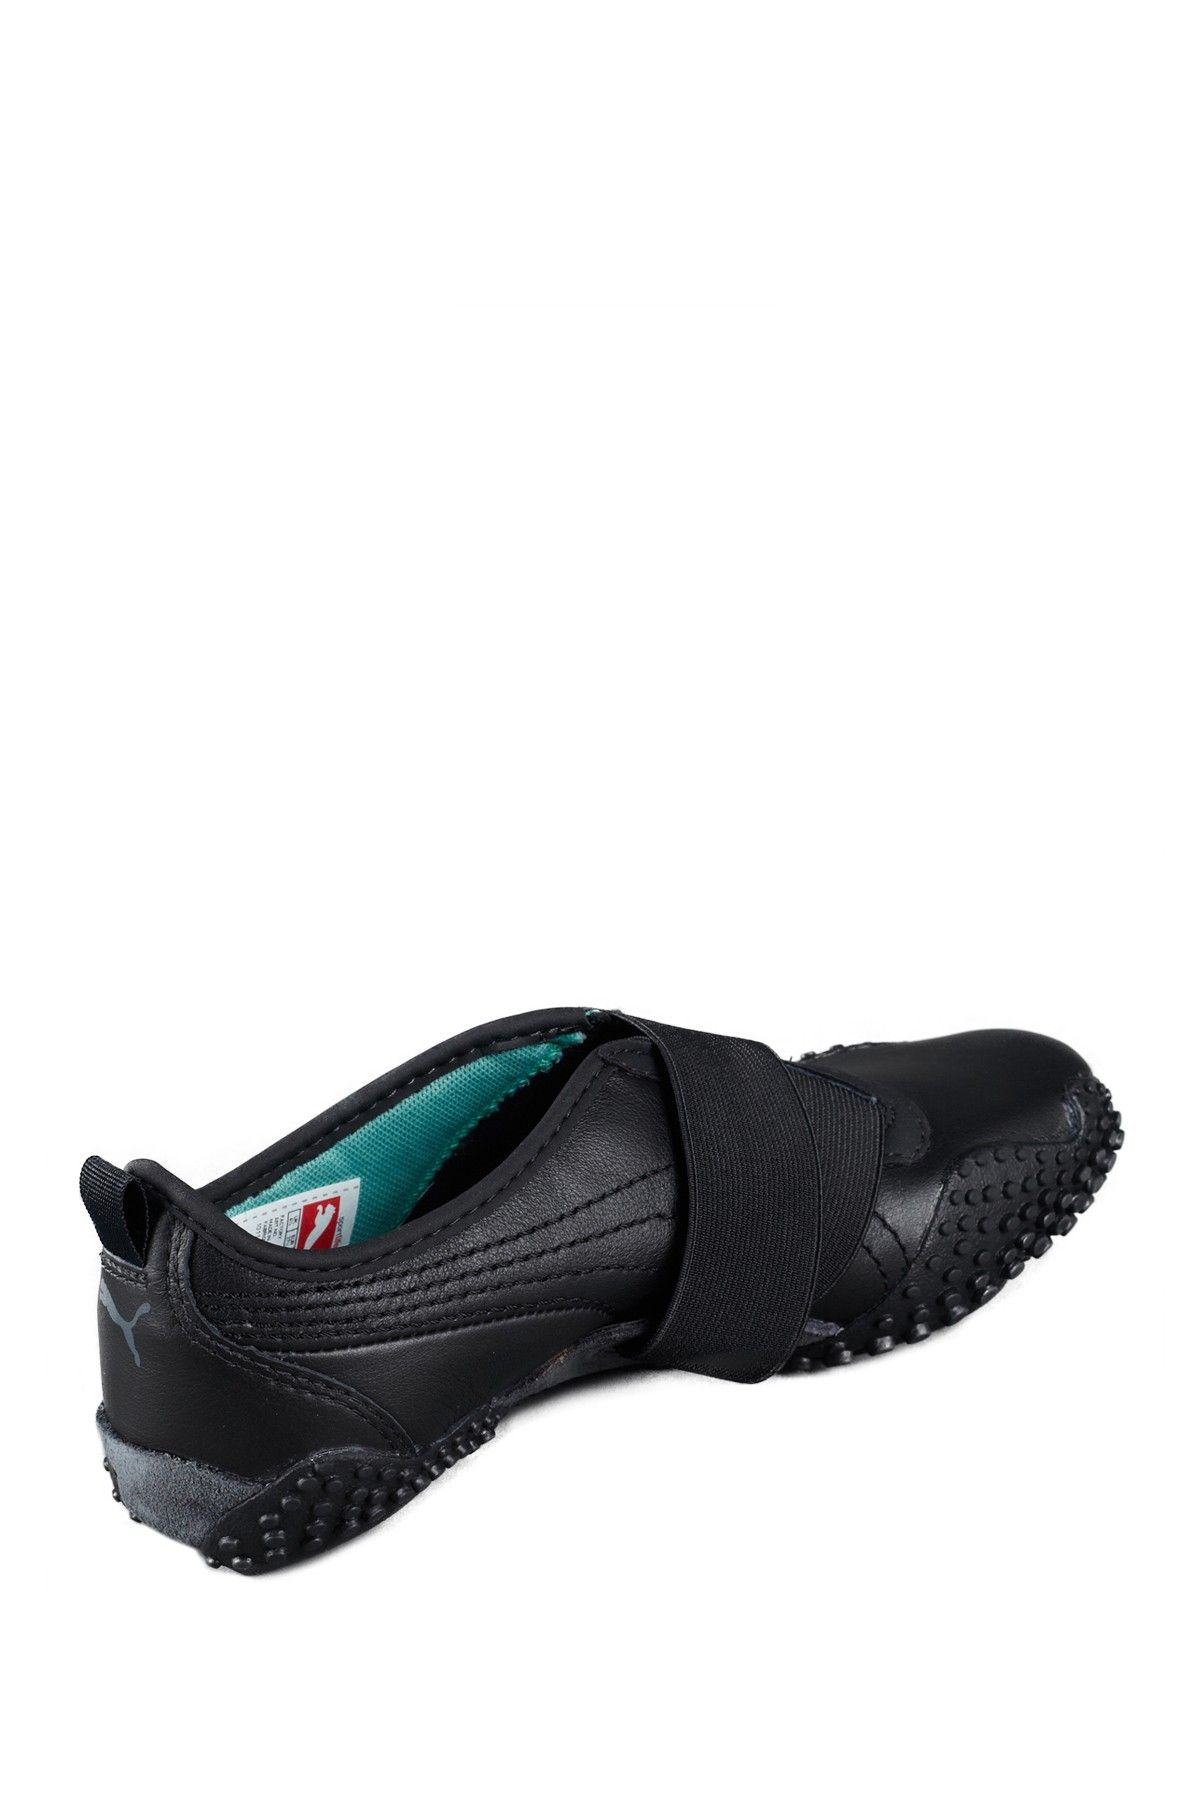 PUMA - Mostro Femme Perf L Shoe is now 47% off. Free Shipping on ... 0c0f0dd68